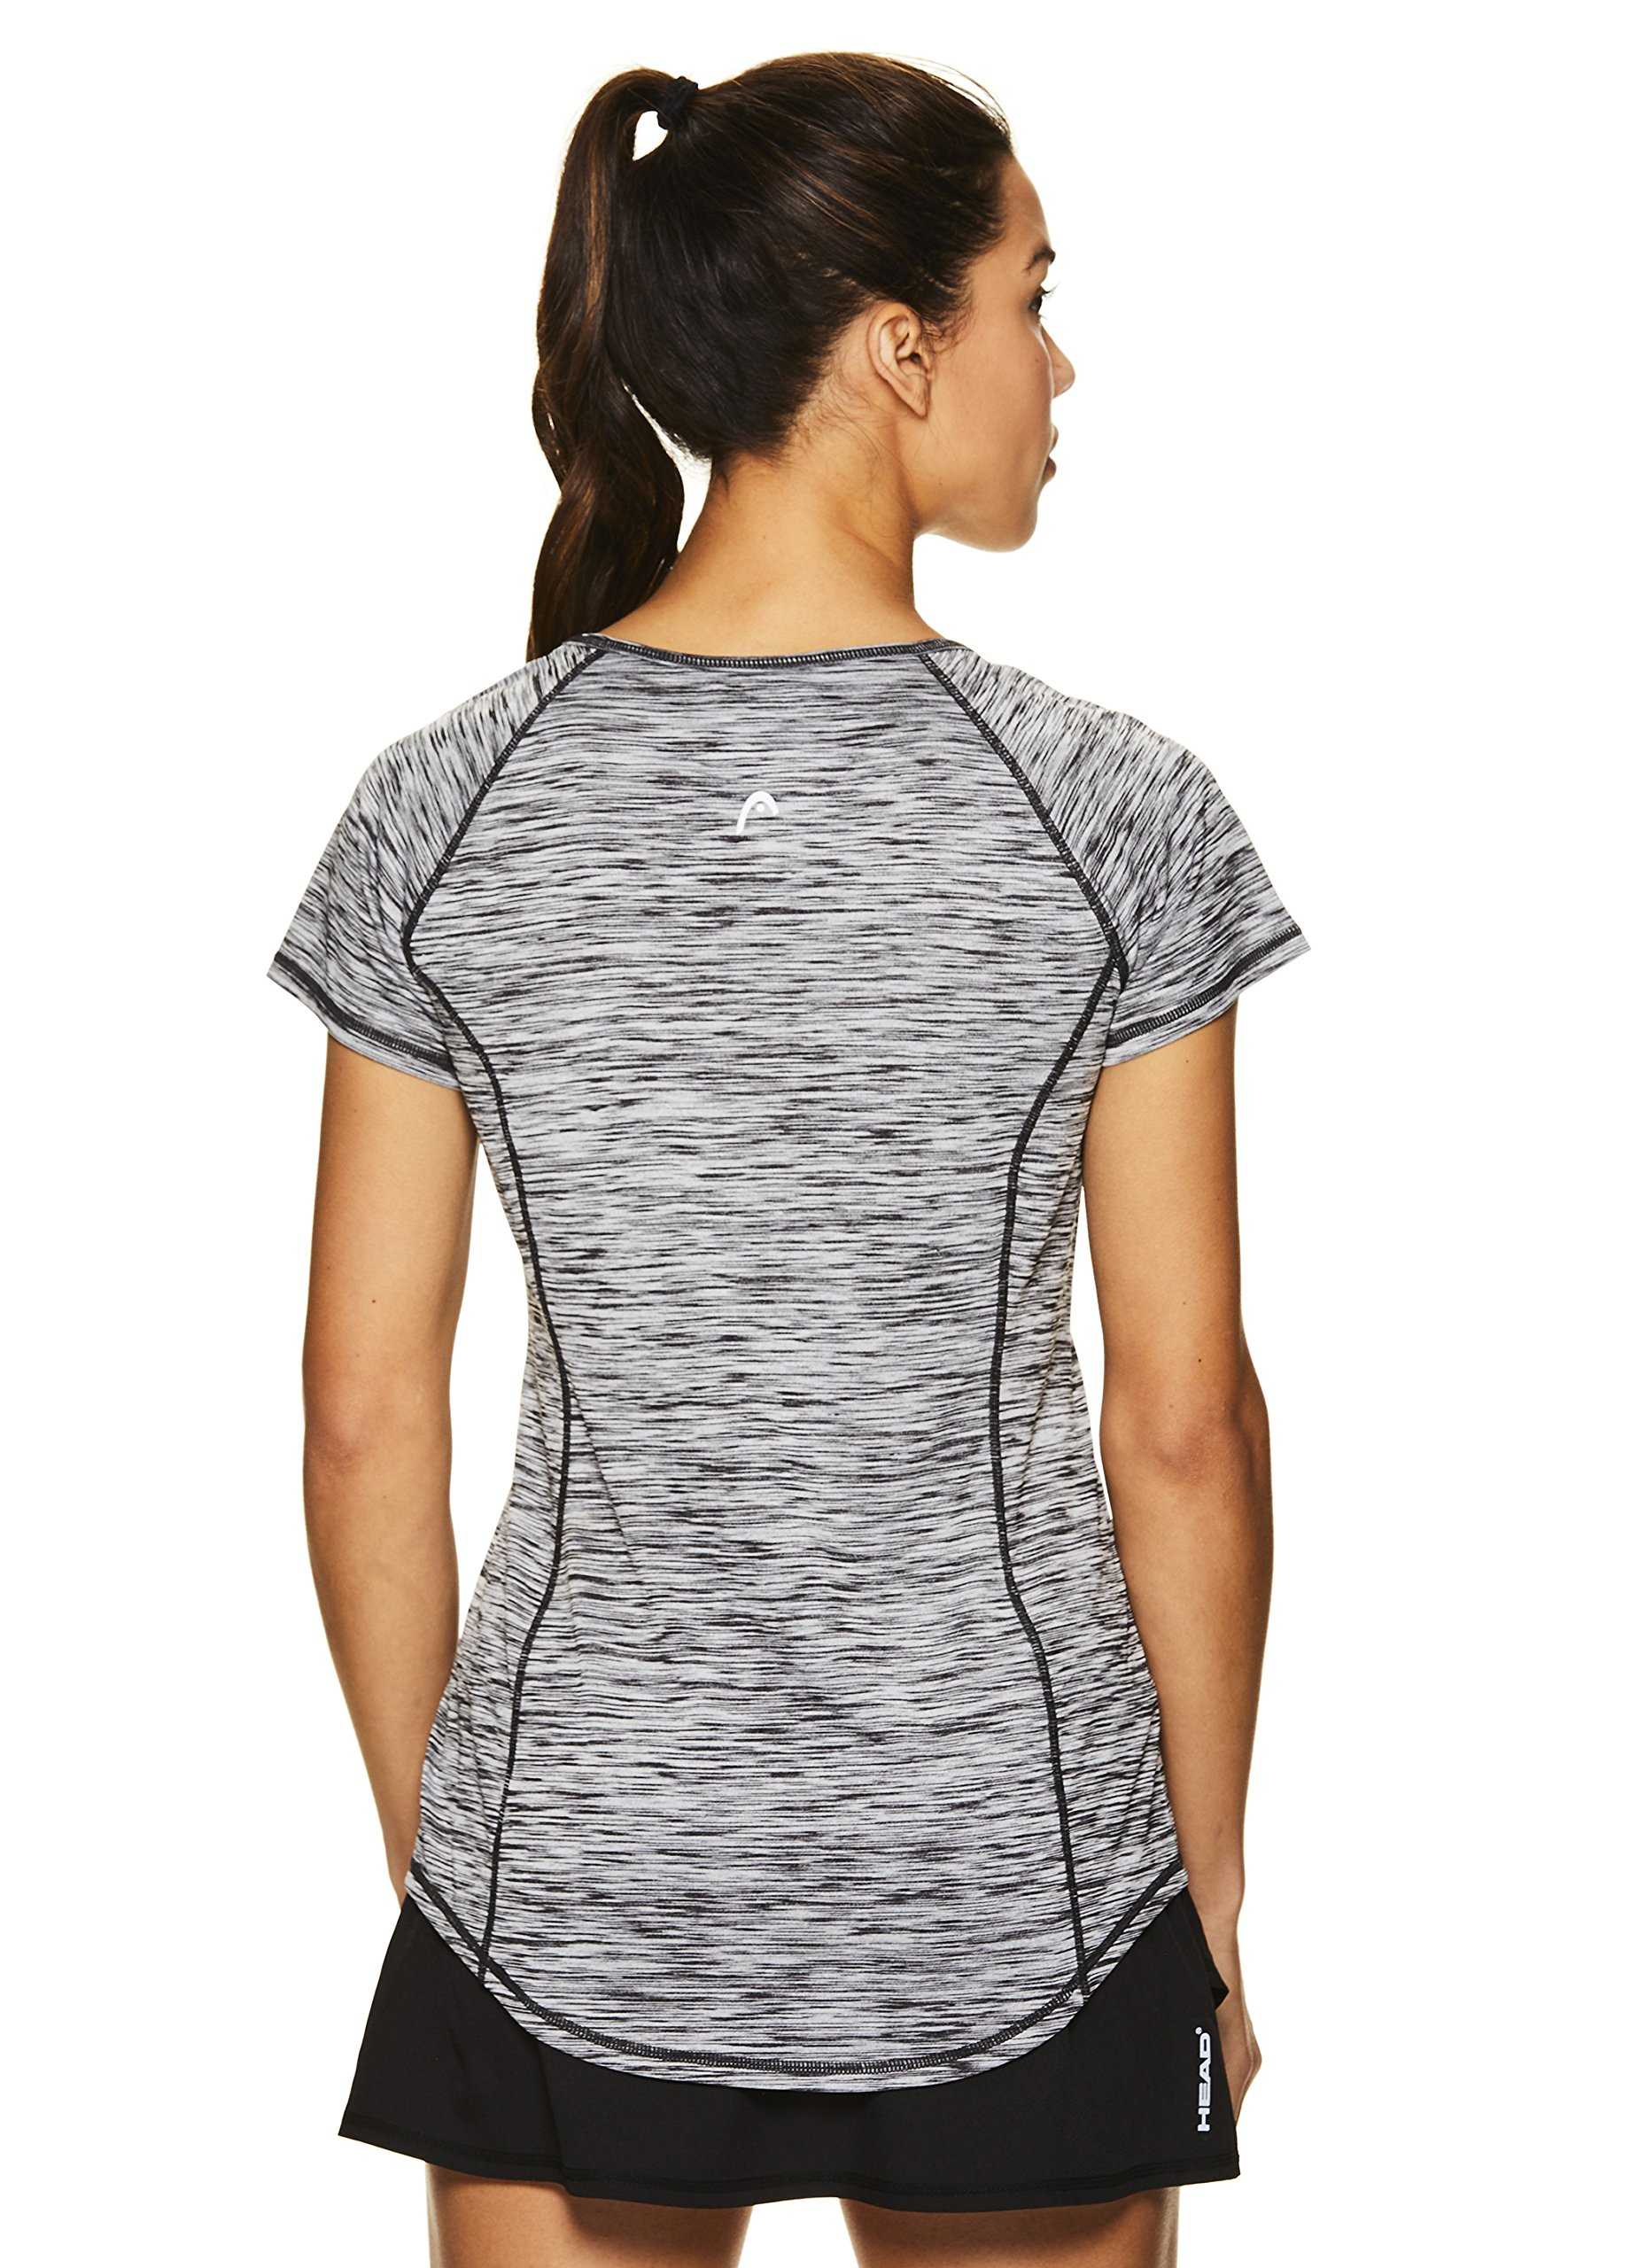 HEAD Women's Serena Short Sleeve Workout T-Shirt - Performance Crew Neck Activewear Top - Black Heather, X-Small by HEAD (Image #3)